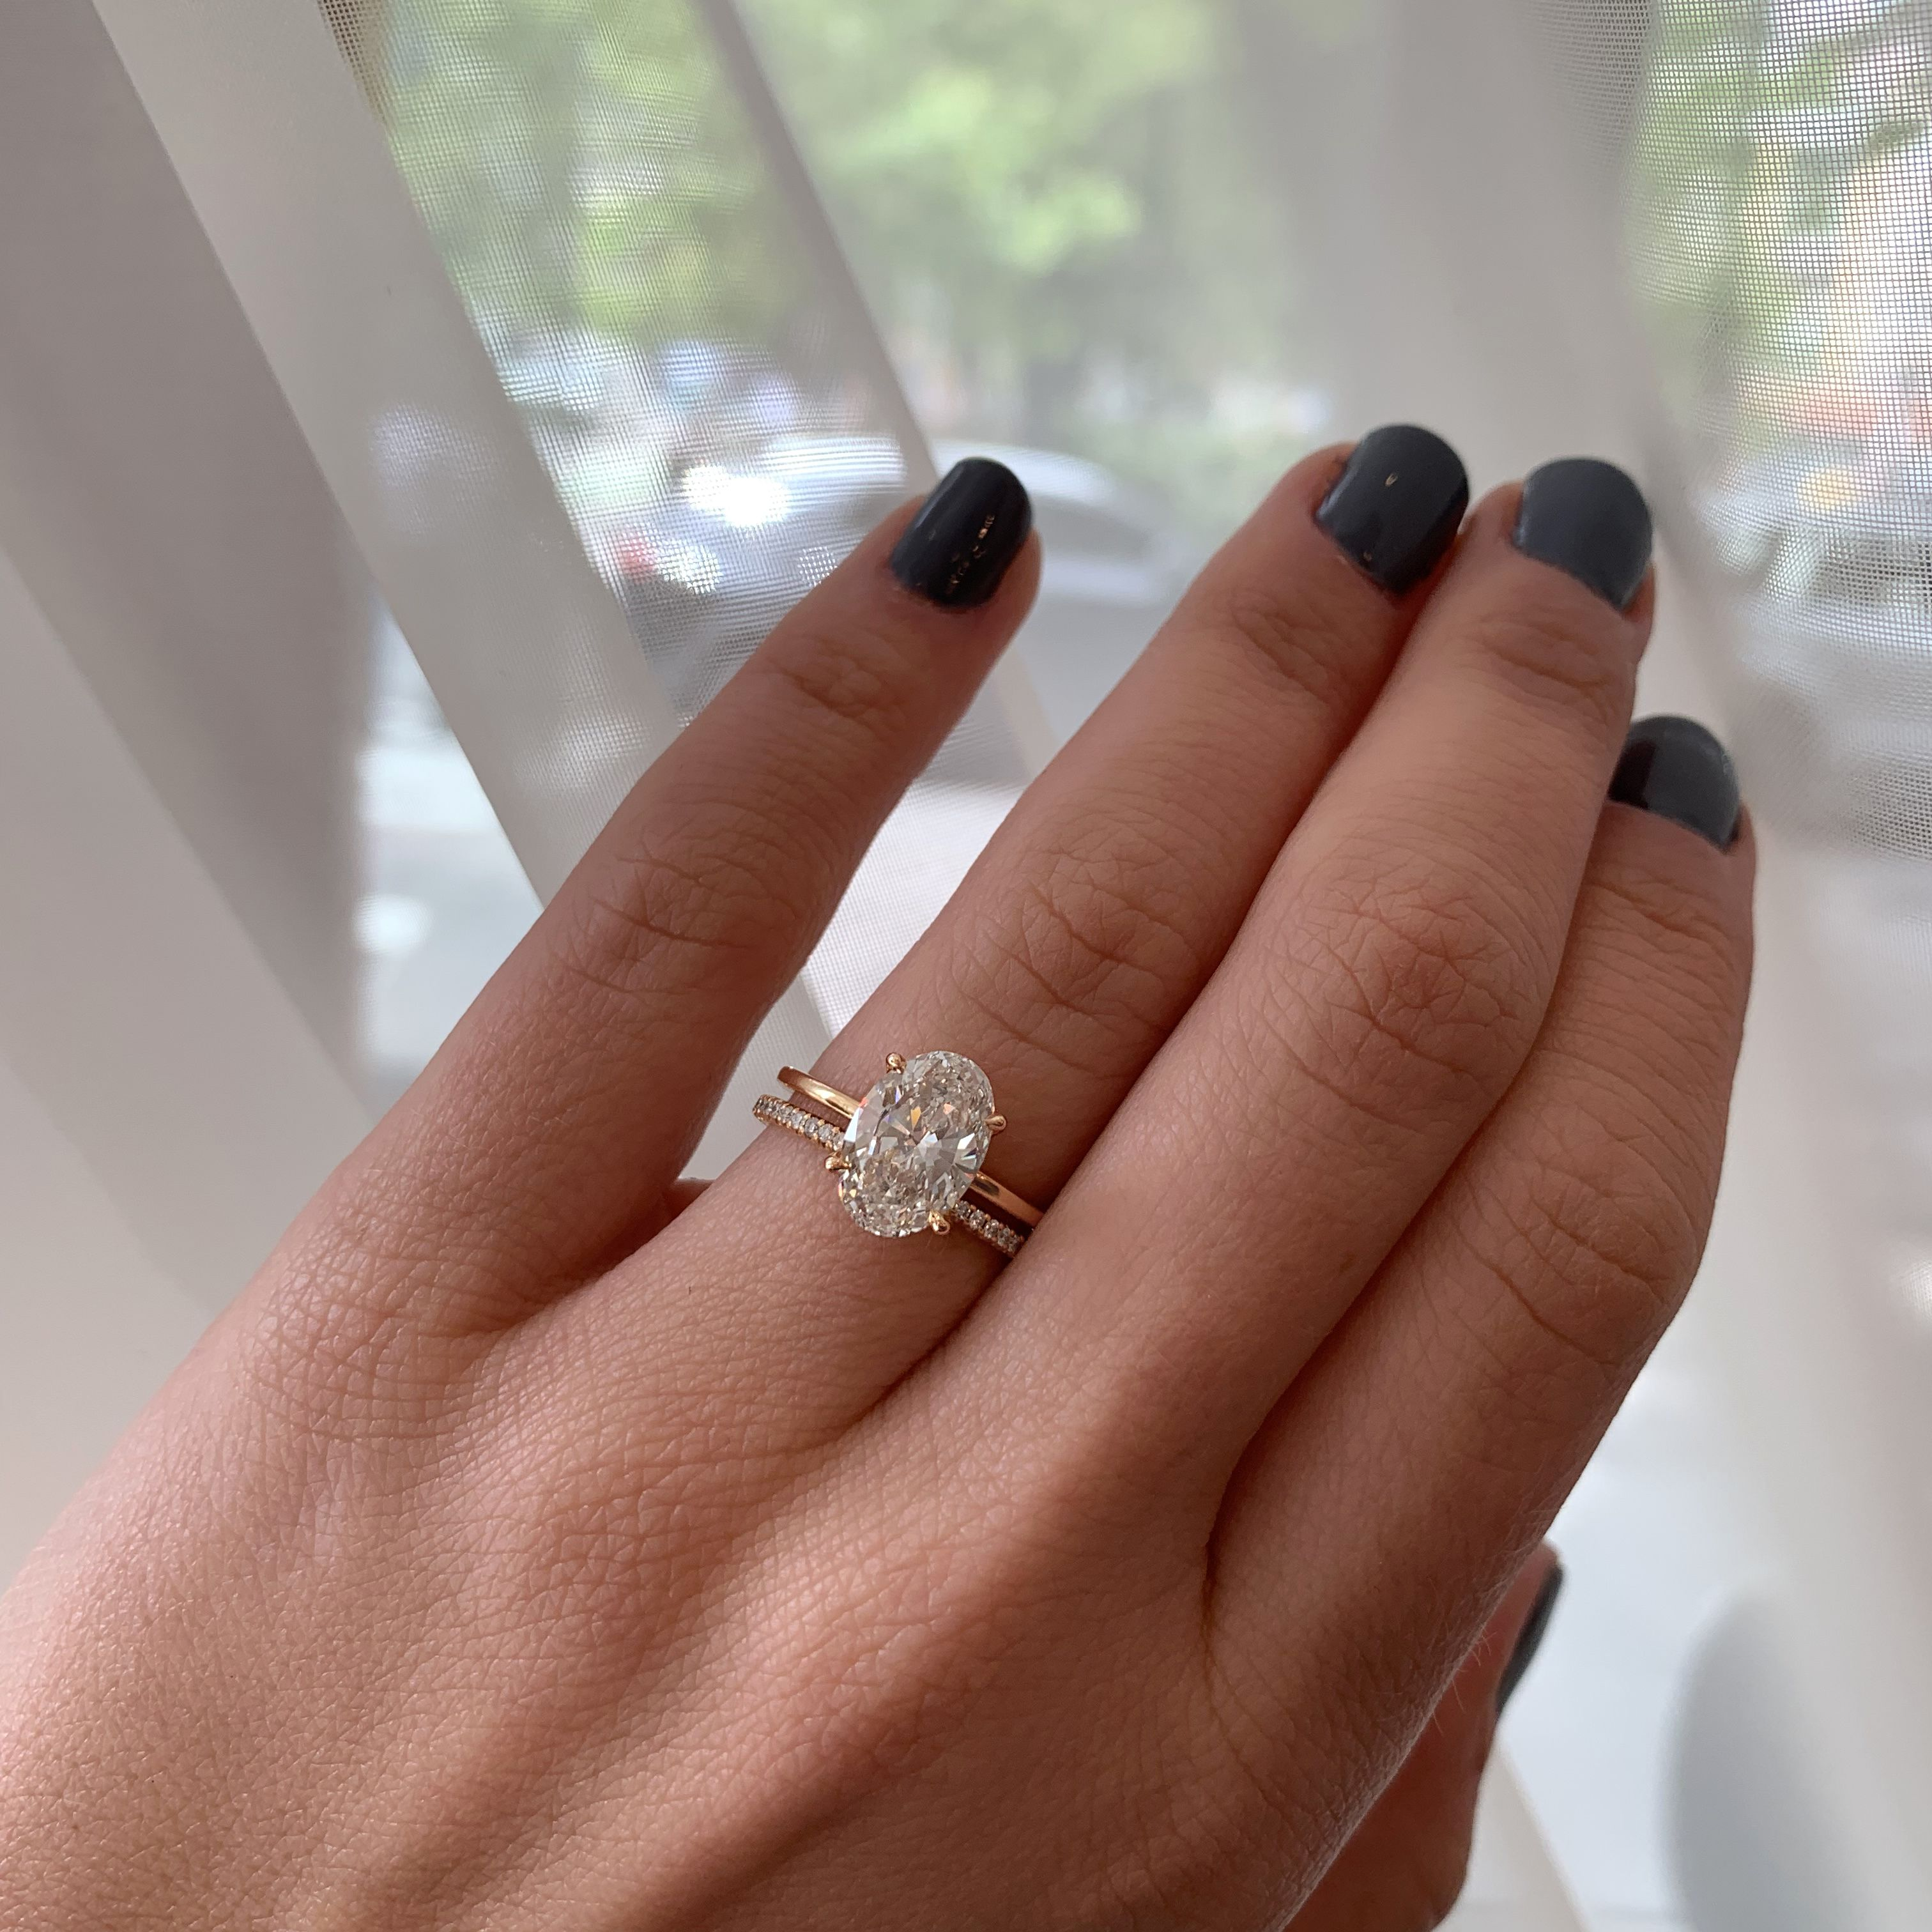 2.10 Carat Oval Cut DE Solitaire | Marisa Perry by Douglas Elliott - Traditional Engagement Rings